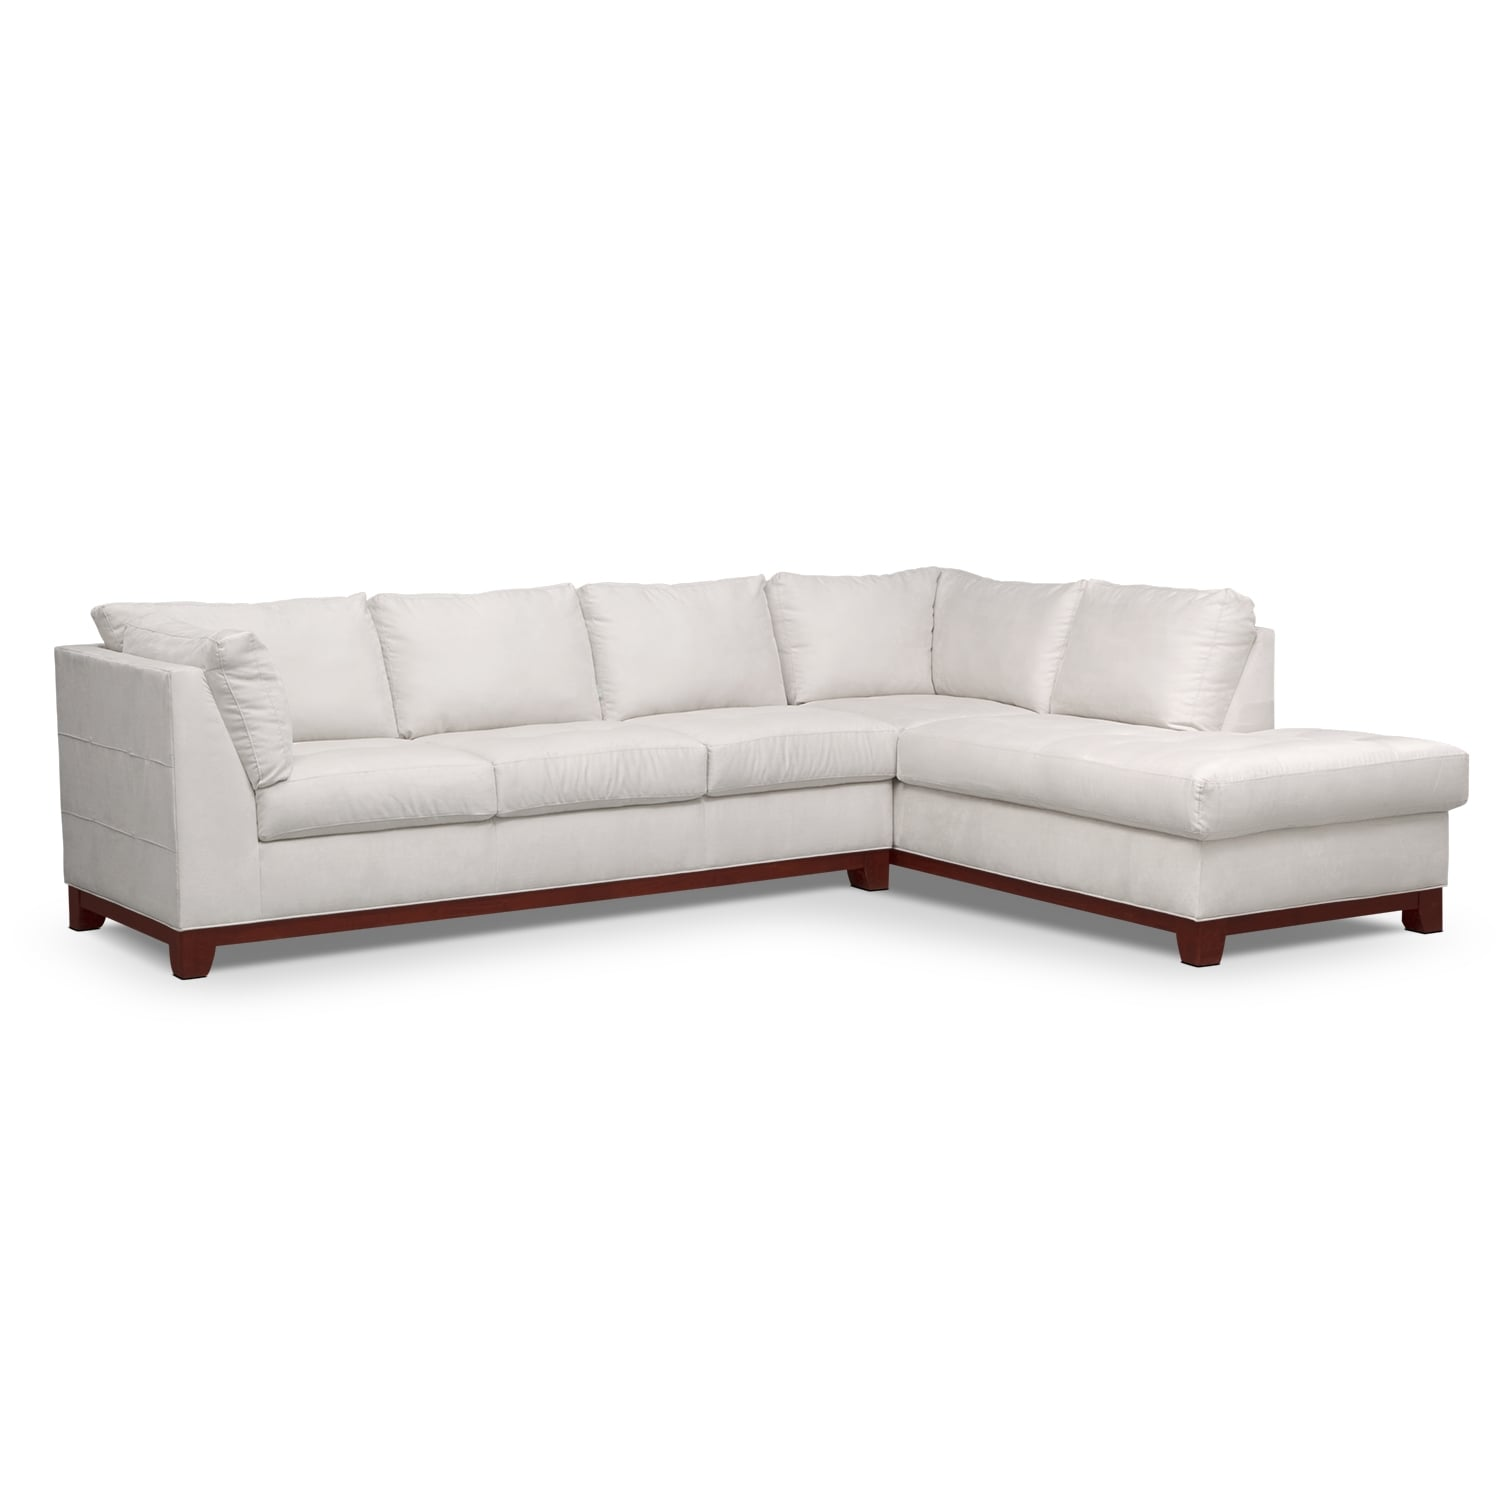 Soho 2 piece sectional with right facing chaise cement for 2 piece sectional sofa with chaise